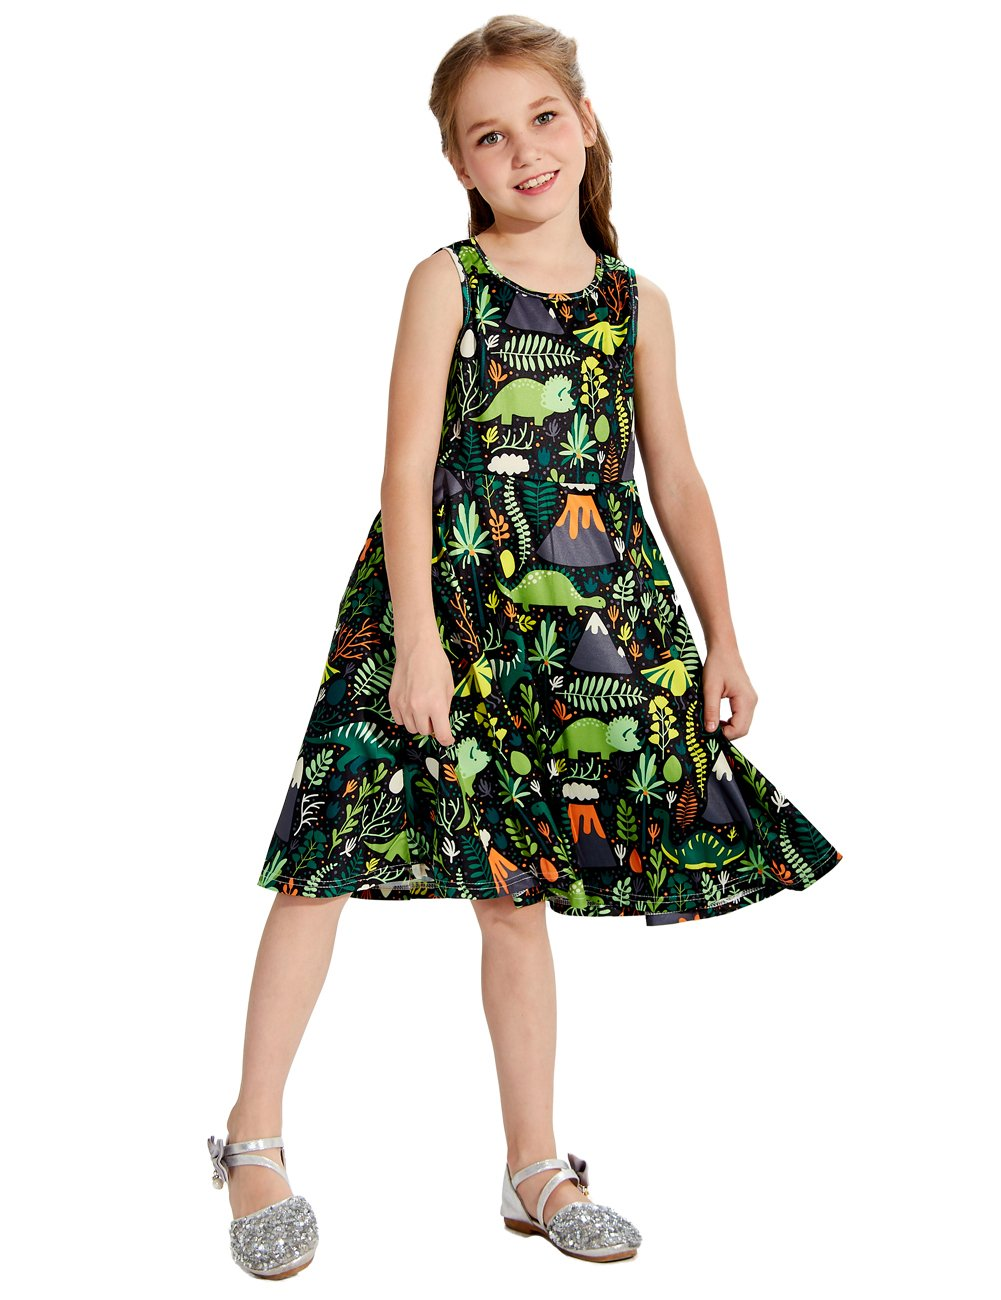 Uideazone Girls Sleeveless Dinosaur Casual Floral Princess Dress for 6-7 Years